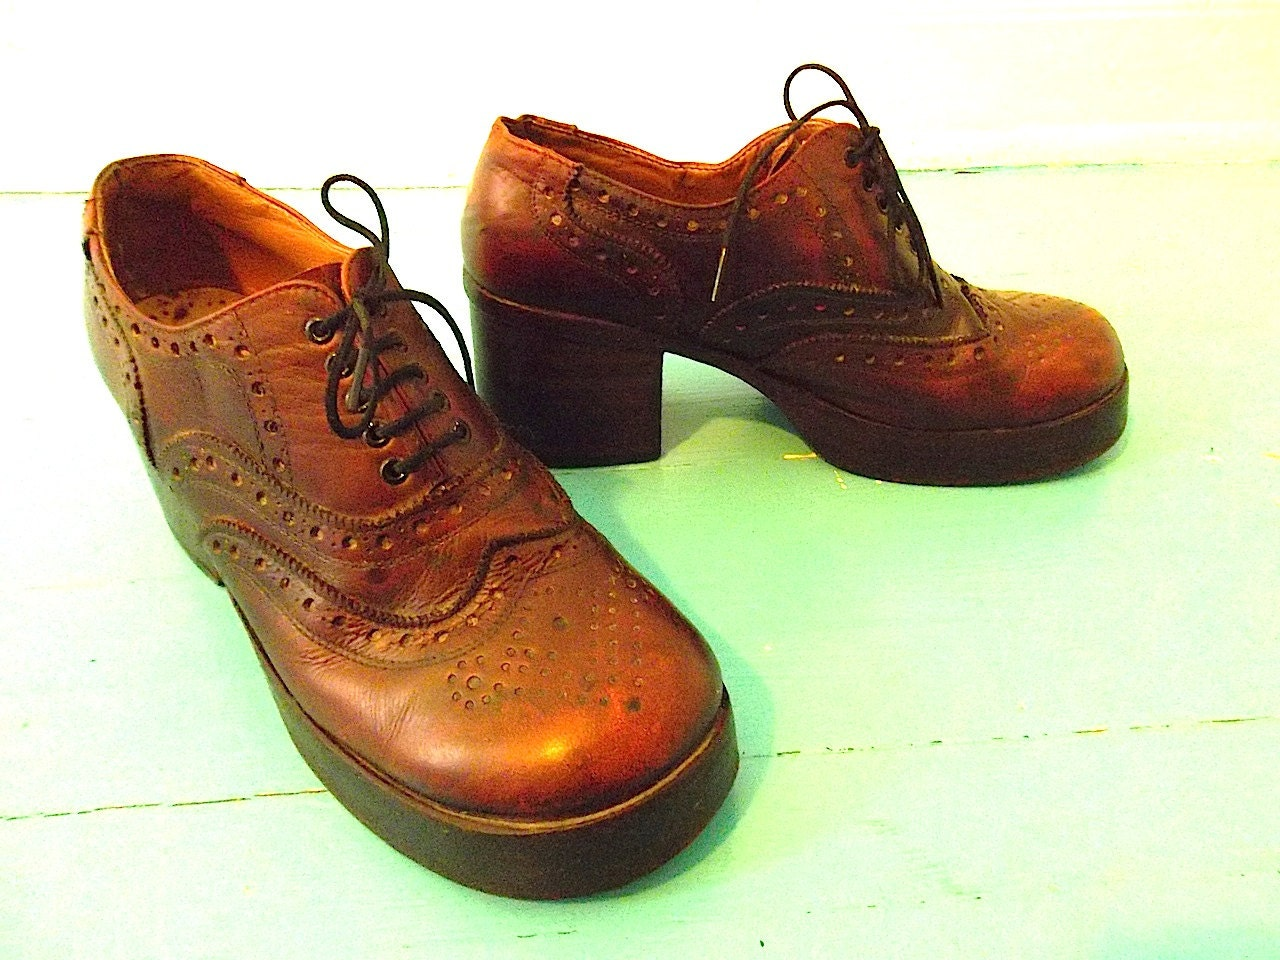 Vintage Platform Shoes 60s 70s Wing Tip Lace Up Disco Shoes